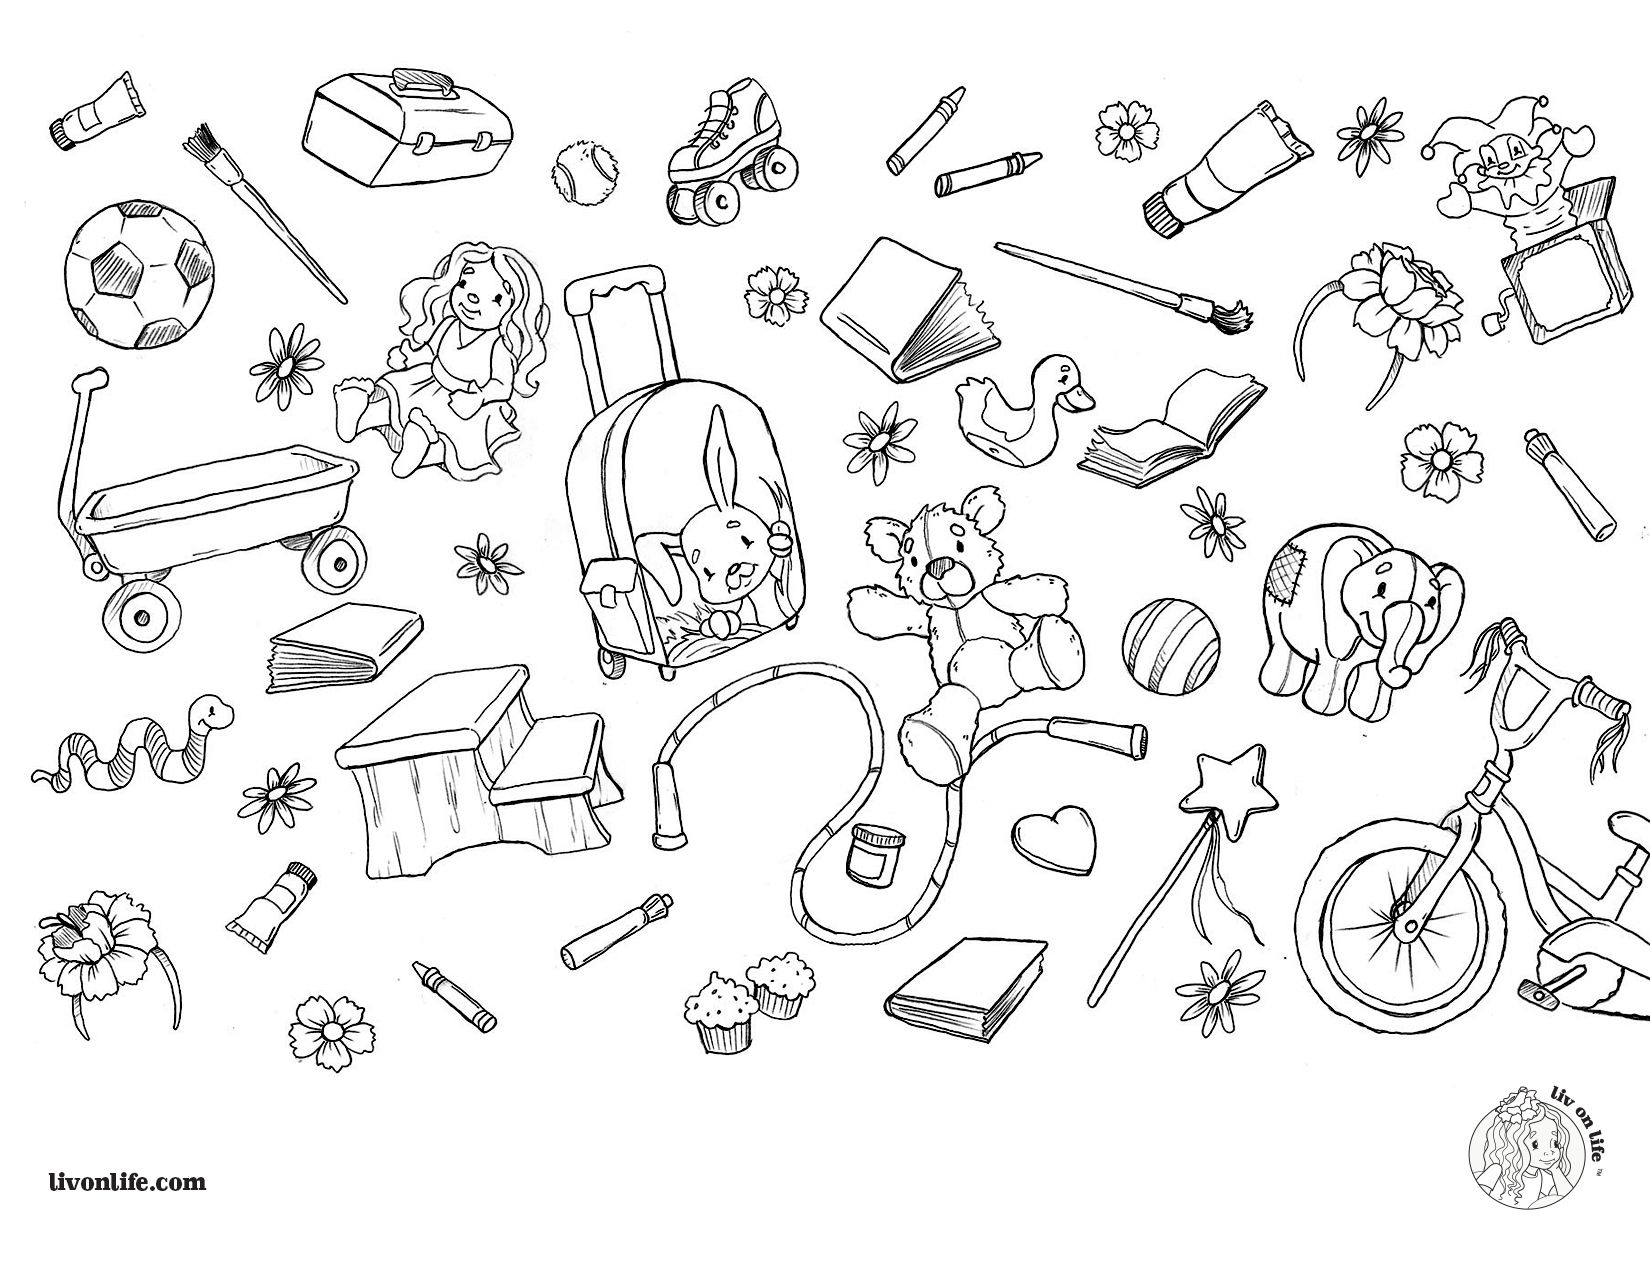 Color My Favorite Things Livonlife Coloringpage Coloring Pages Color Me Color